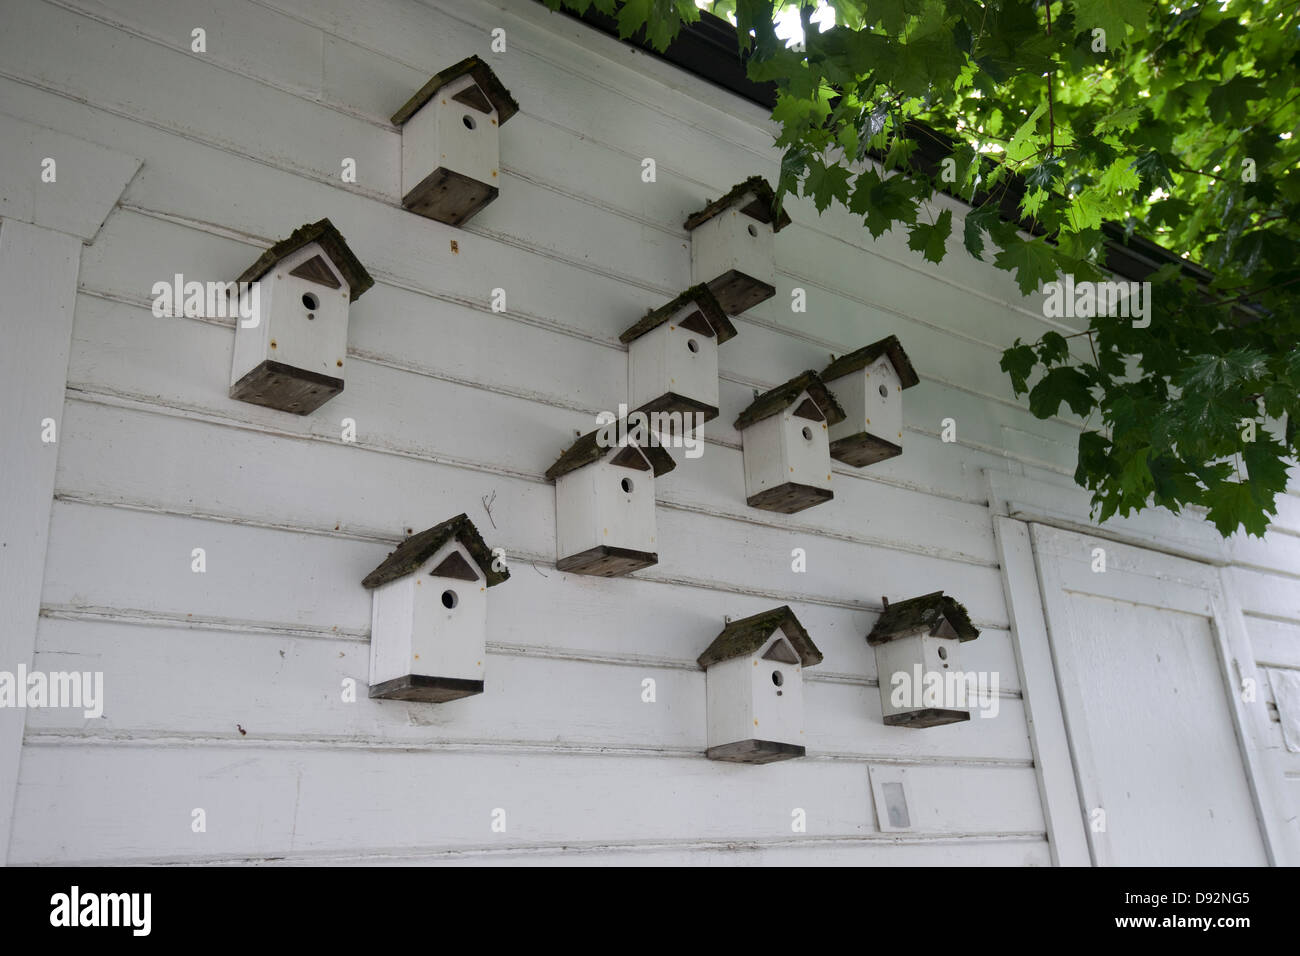 ten identical birdhouses on the side of a house - Stock Image